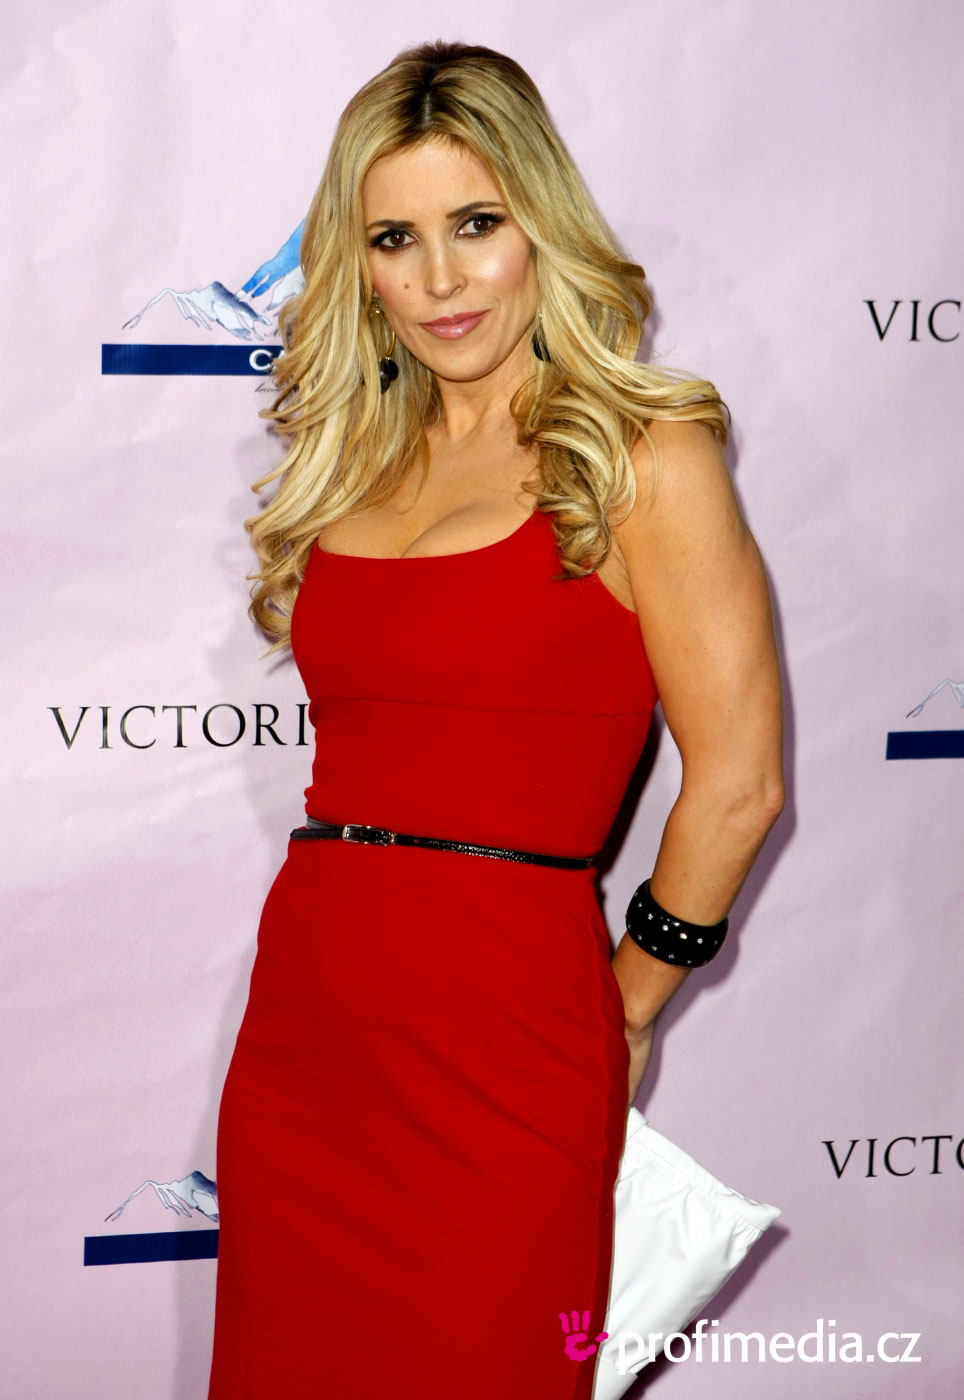 you can try this jillian hairstyle with your own photo upload at - Jillian Barberie